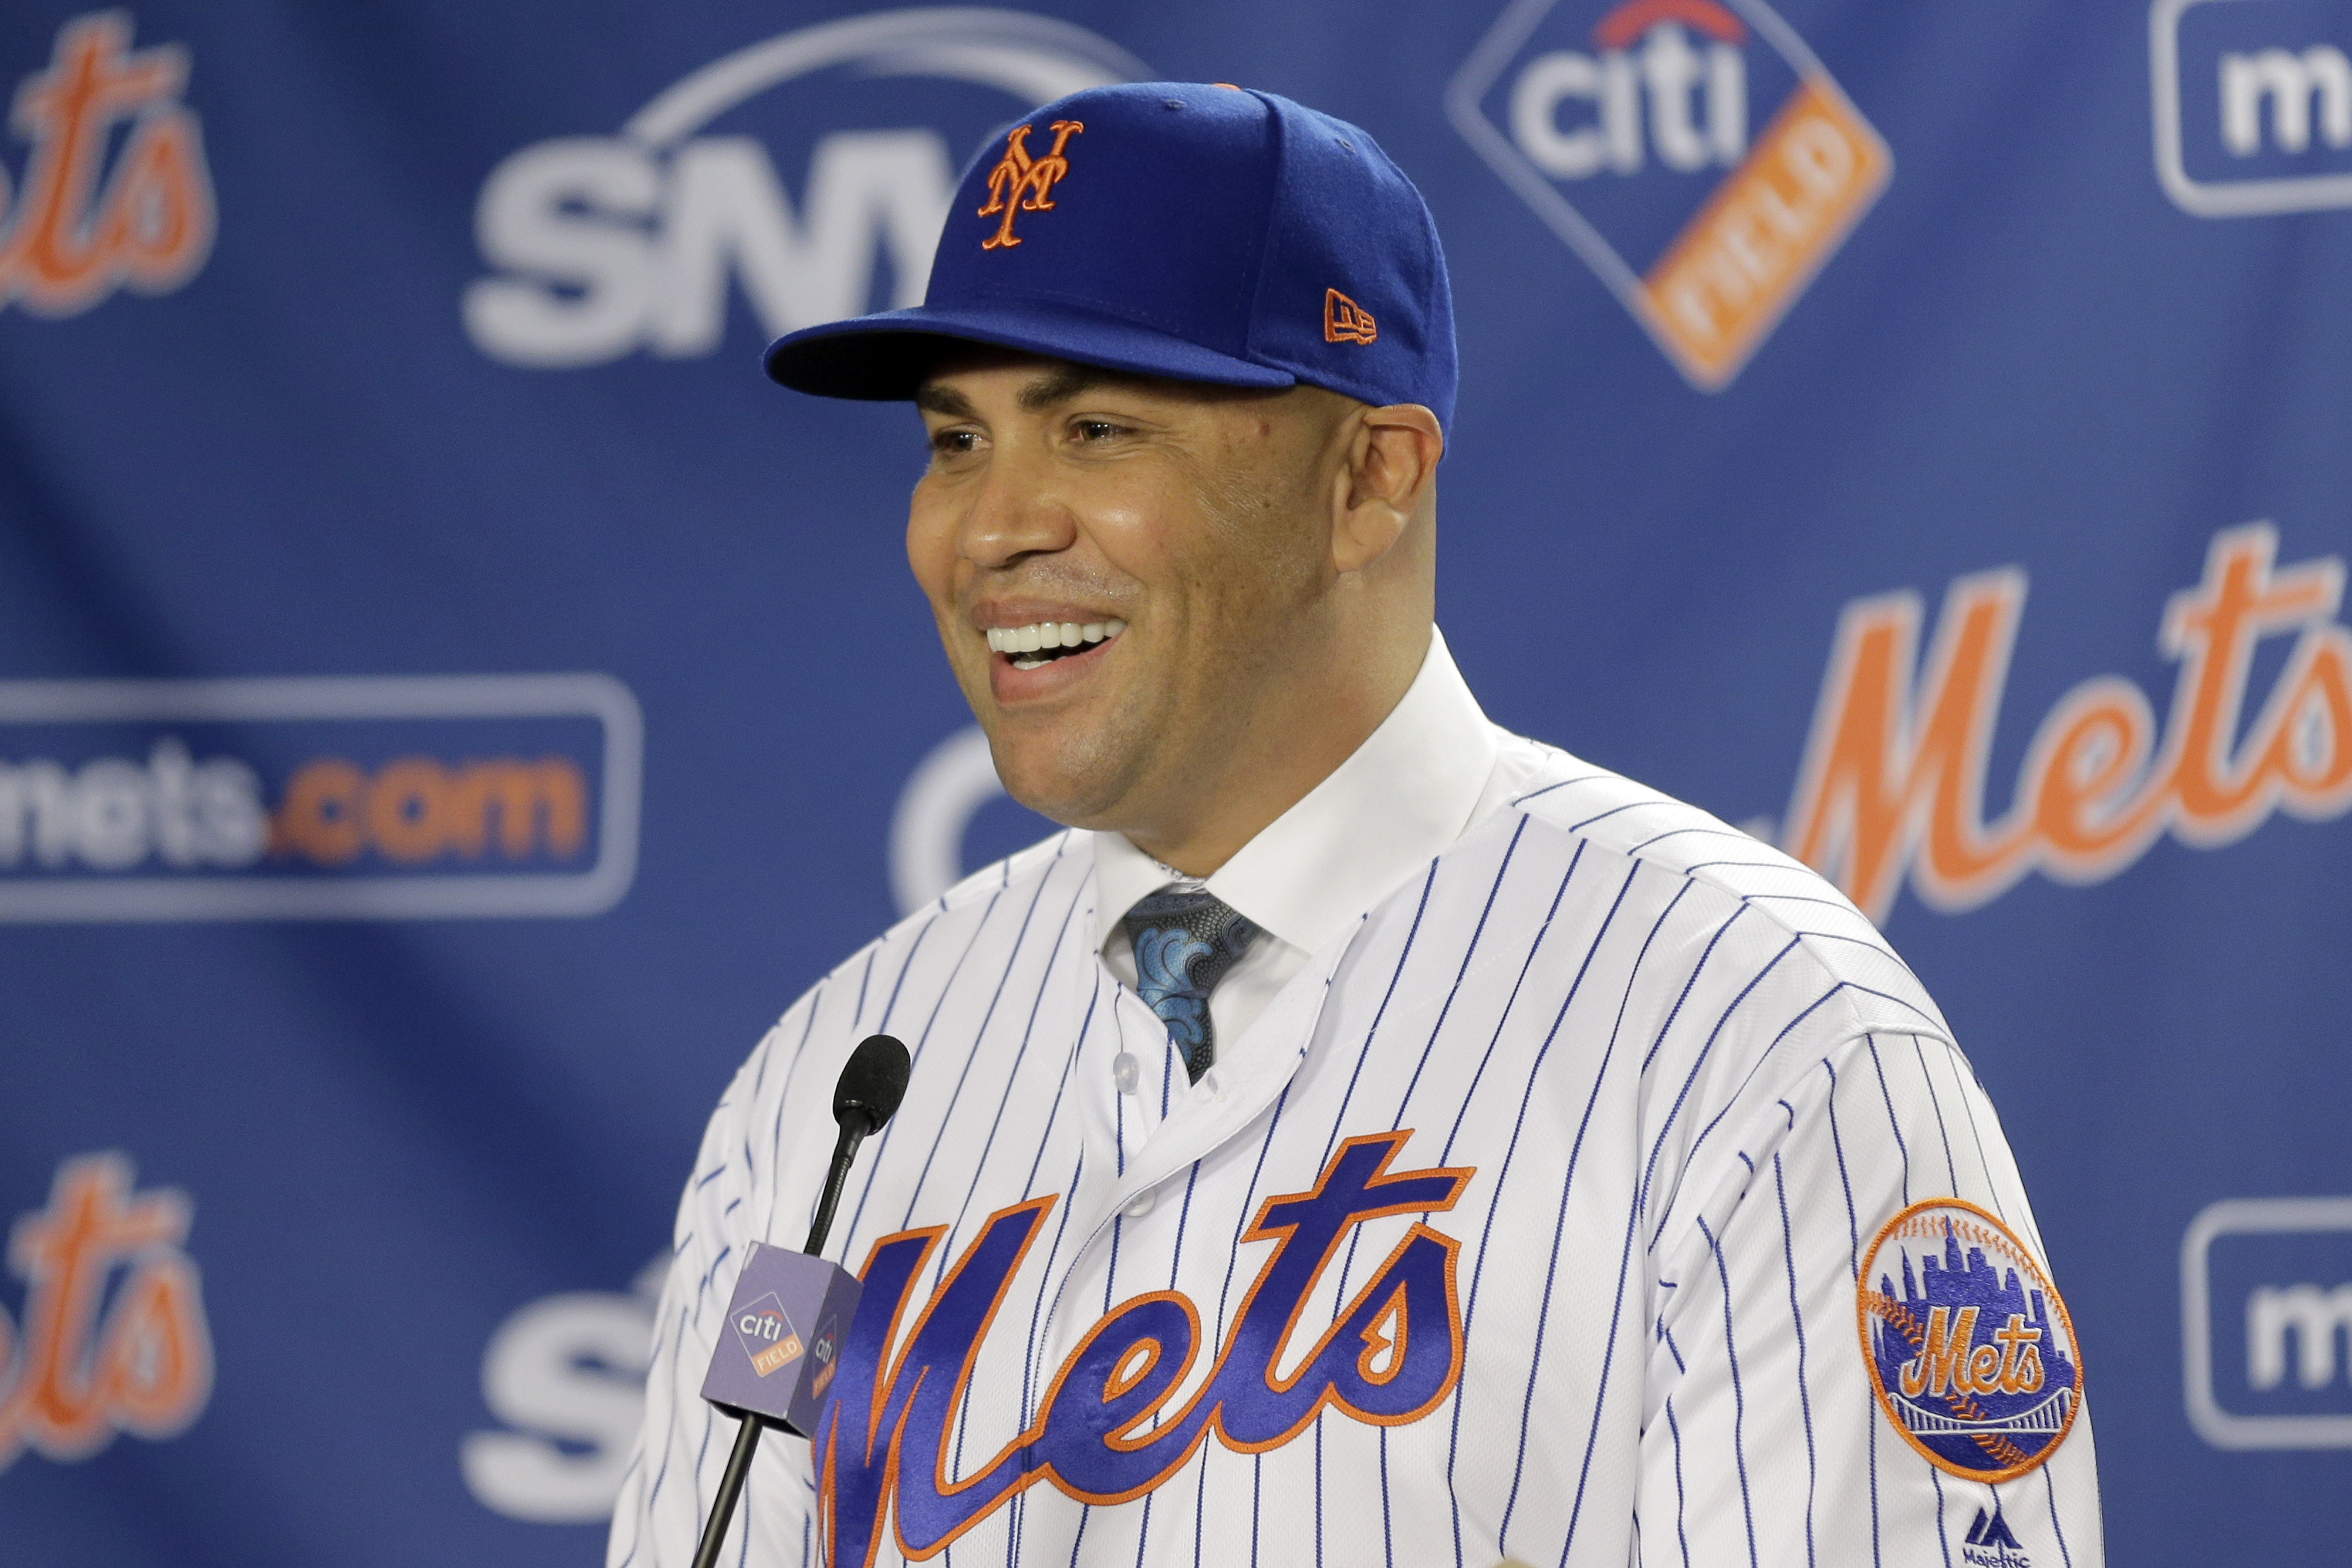 The Mets have fired manager Carlos Beltran after he was named as player in Astros' sign-stealing scheme. (AP Photo/Seth Wenig)